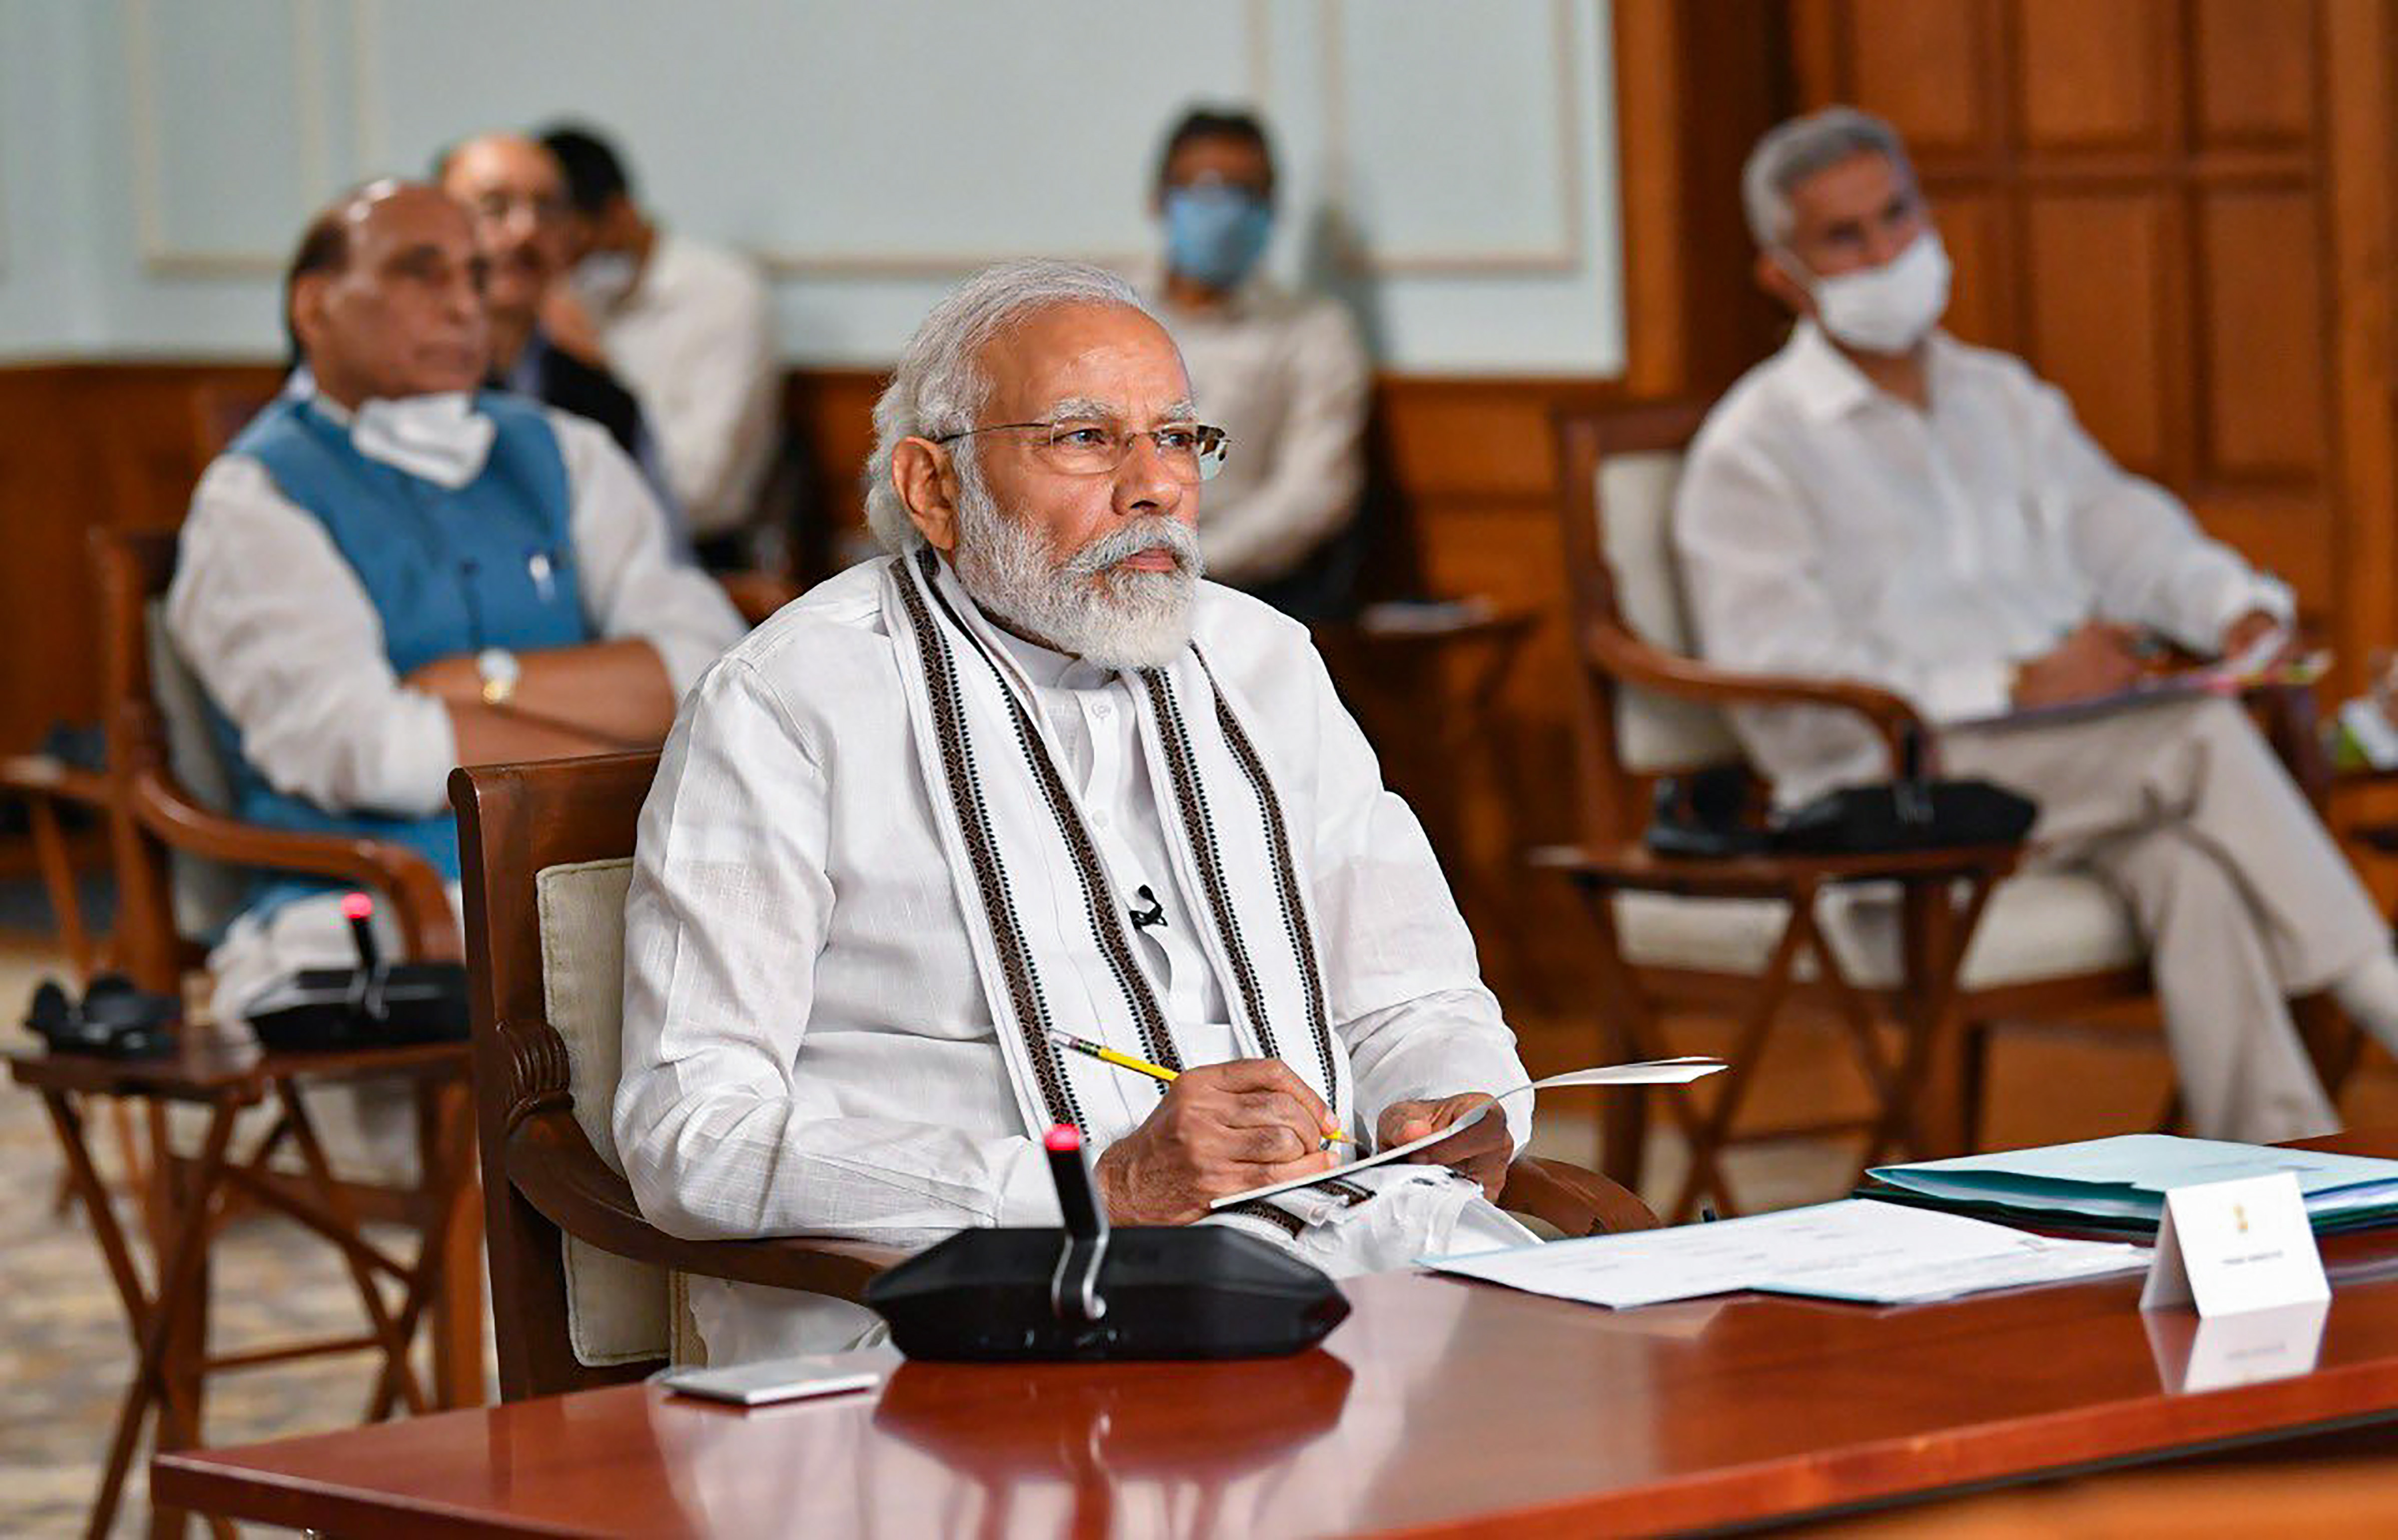 Prime Minister Narendra Modi during the all-party meeting to discuss the situation along the India-China border via videoconferencing in New Delhi on Friday.